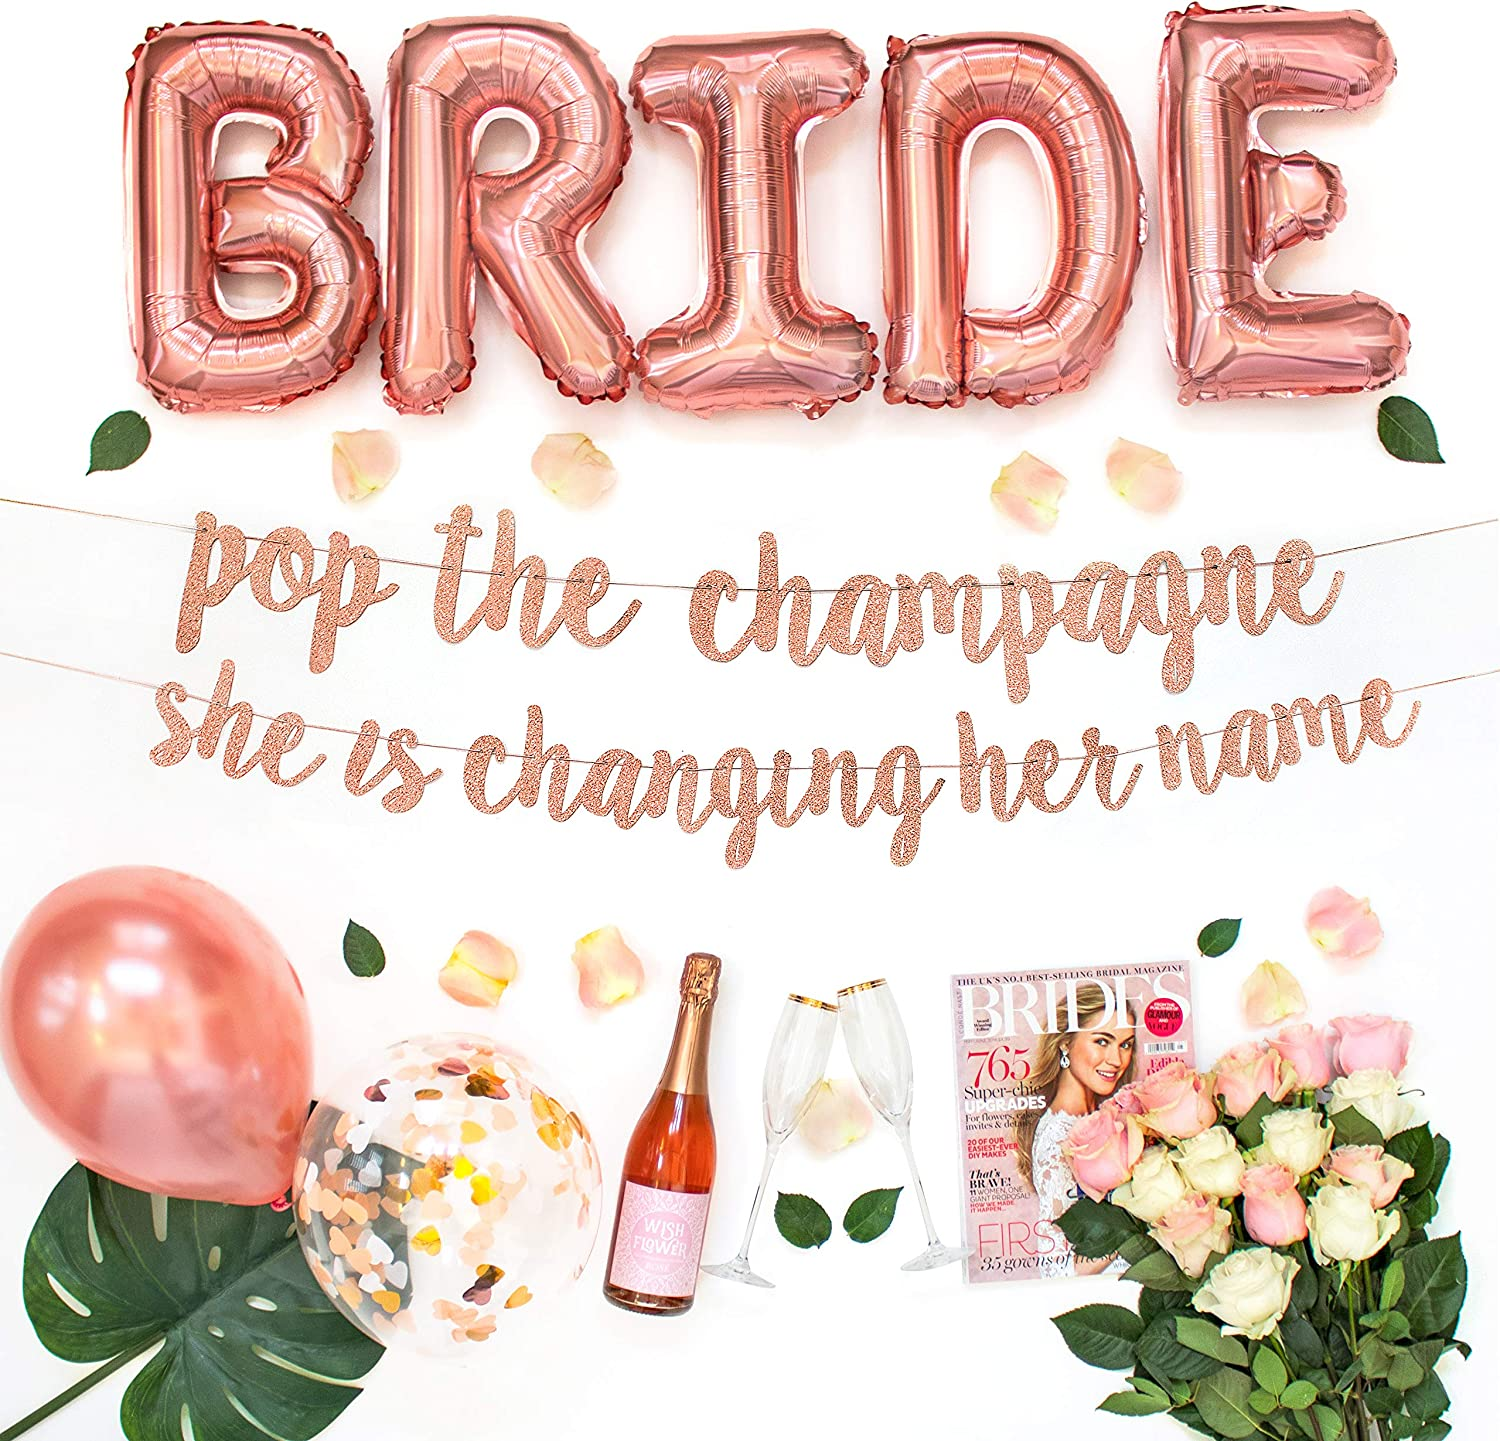 Bachelorette Party Decorations Kit | Bridal Shower Supplies | Bride to Be Sash, Ring Foil, Rose Glitter Banner | Pop The Champagne She is Changing Her Name (Rose Gold)